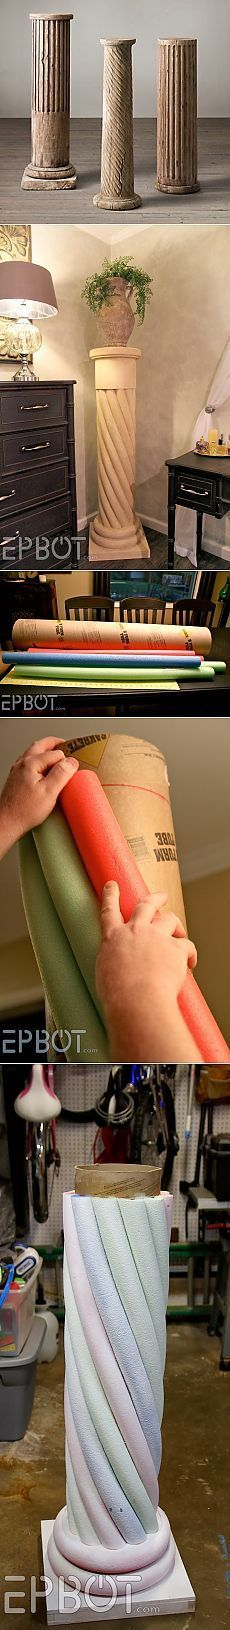 "EPBOT: Make Your Own ""Stone"" Decorative Column... With Pool Noodles! /Колонны под цветы"